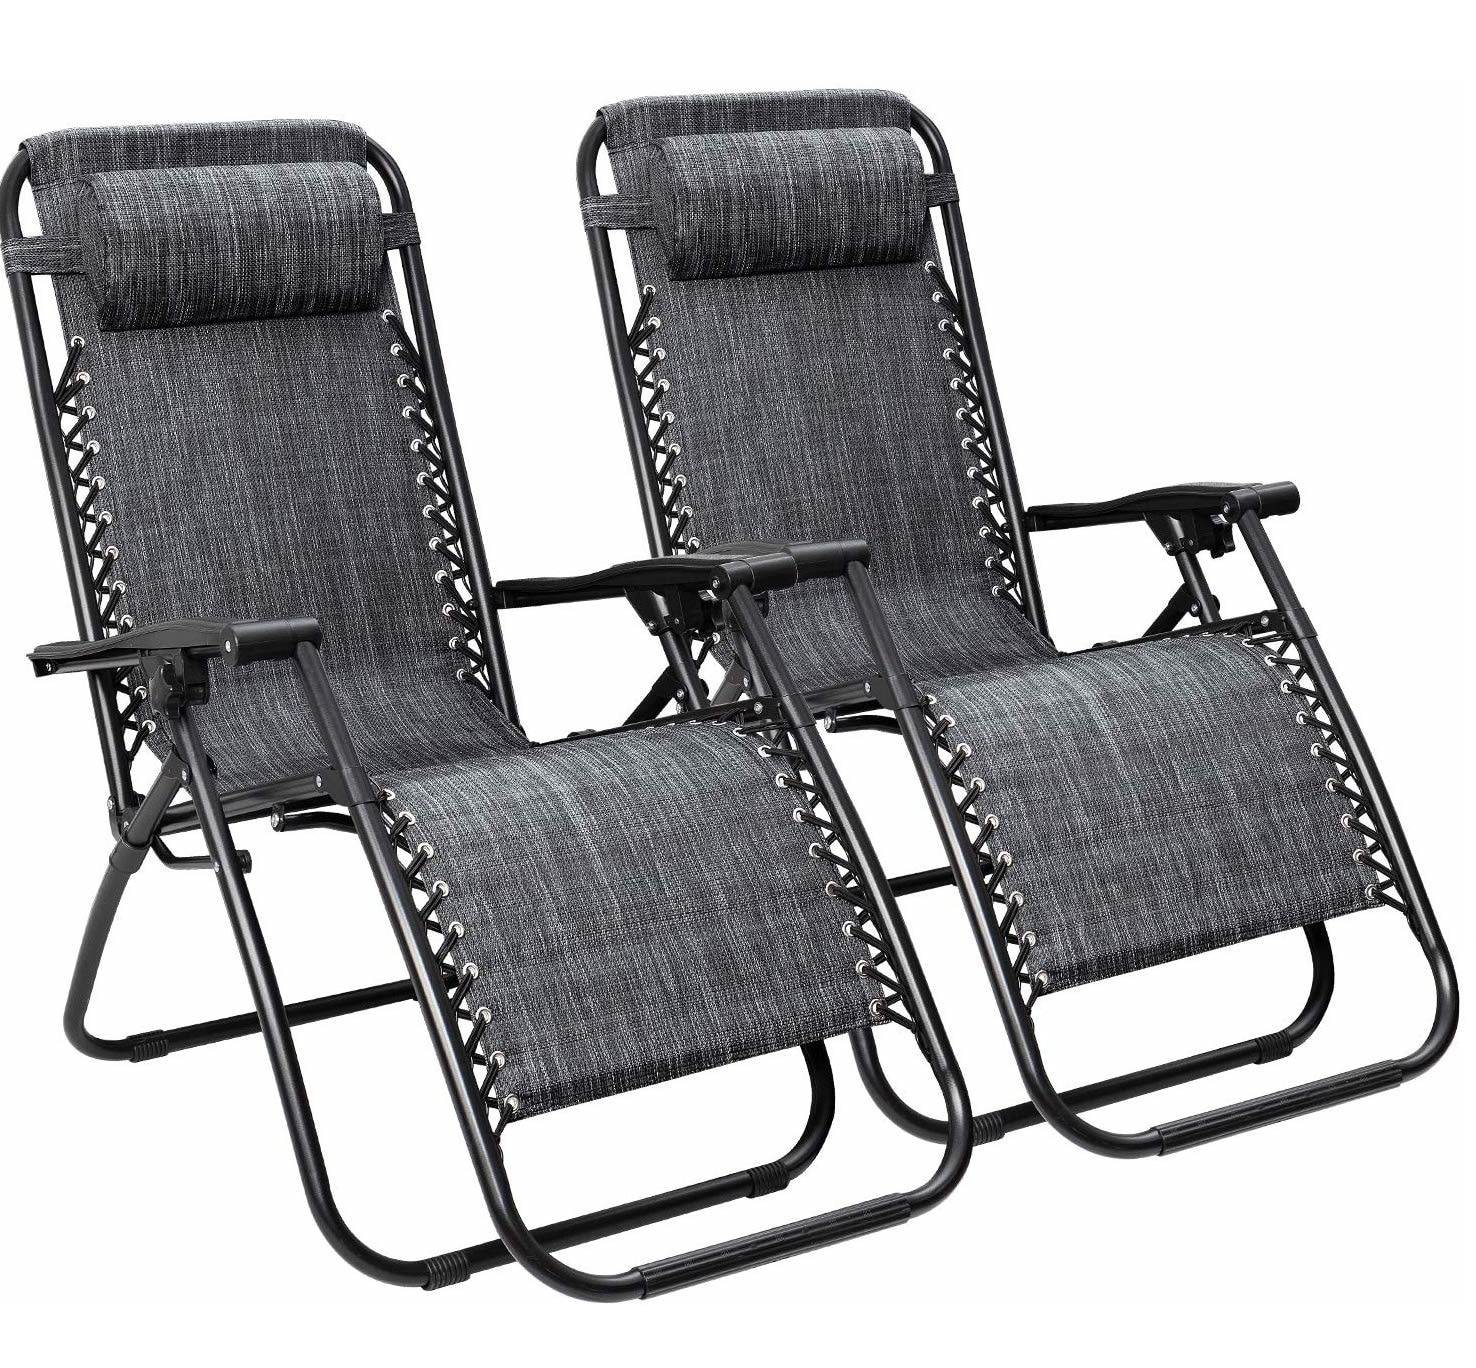 12. Flamaker Folding Lounge Chair with Pillow - Zero Gravity Outdoor Lounge Chairs